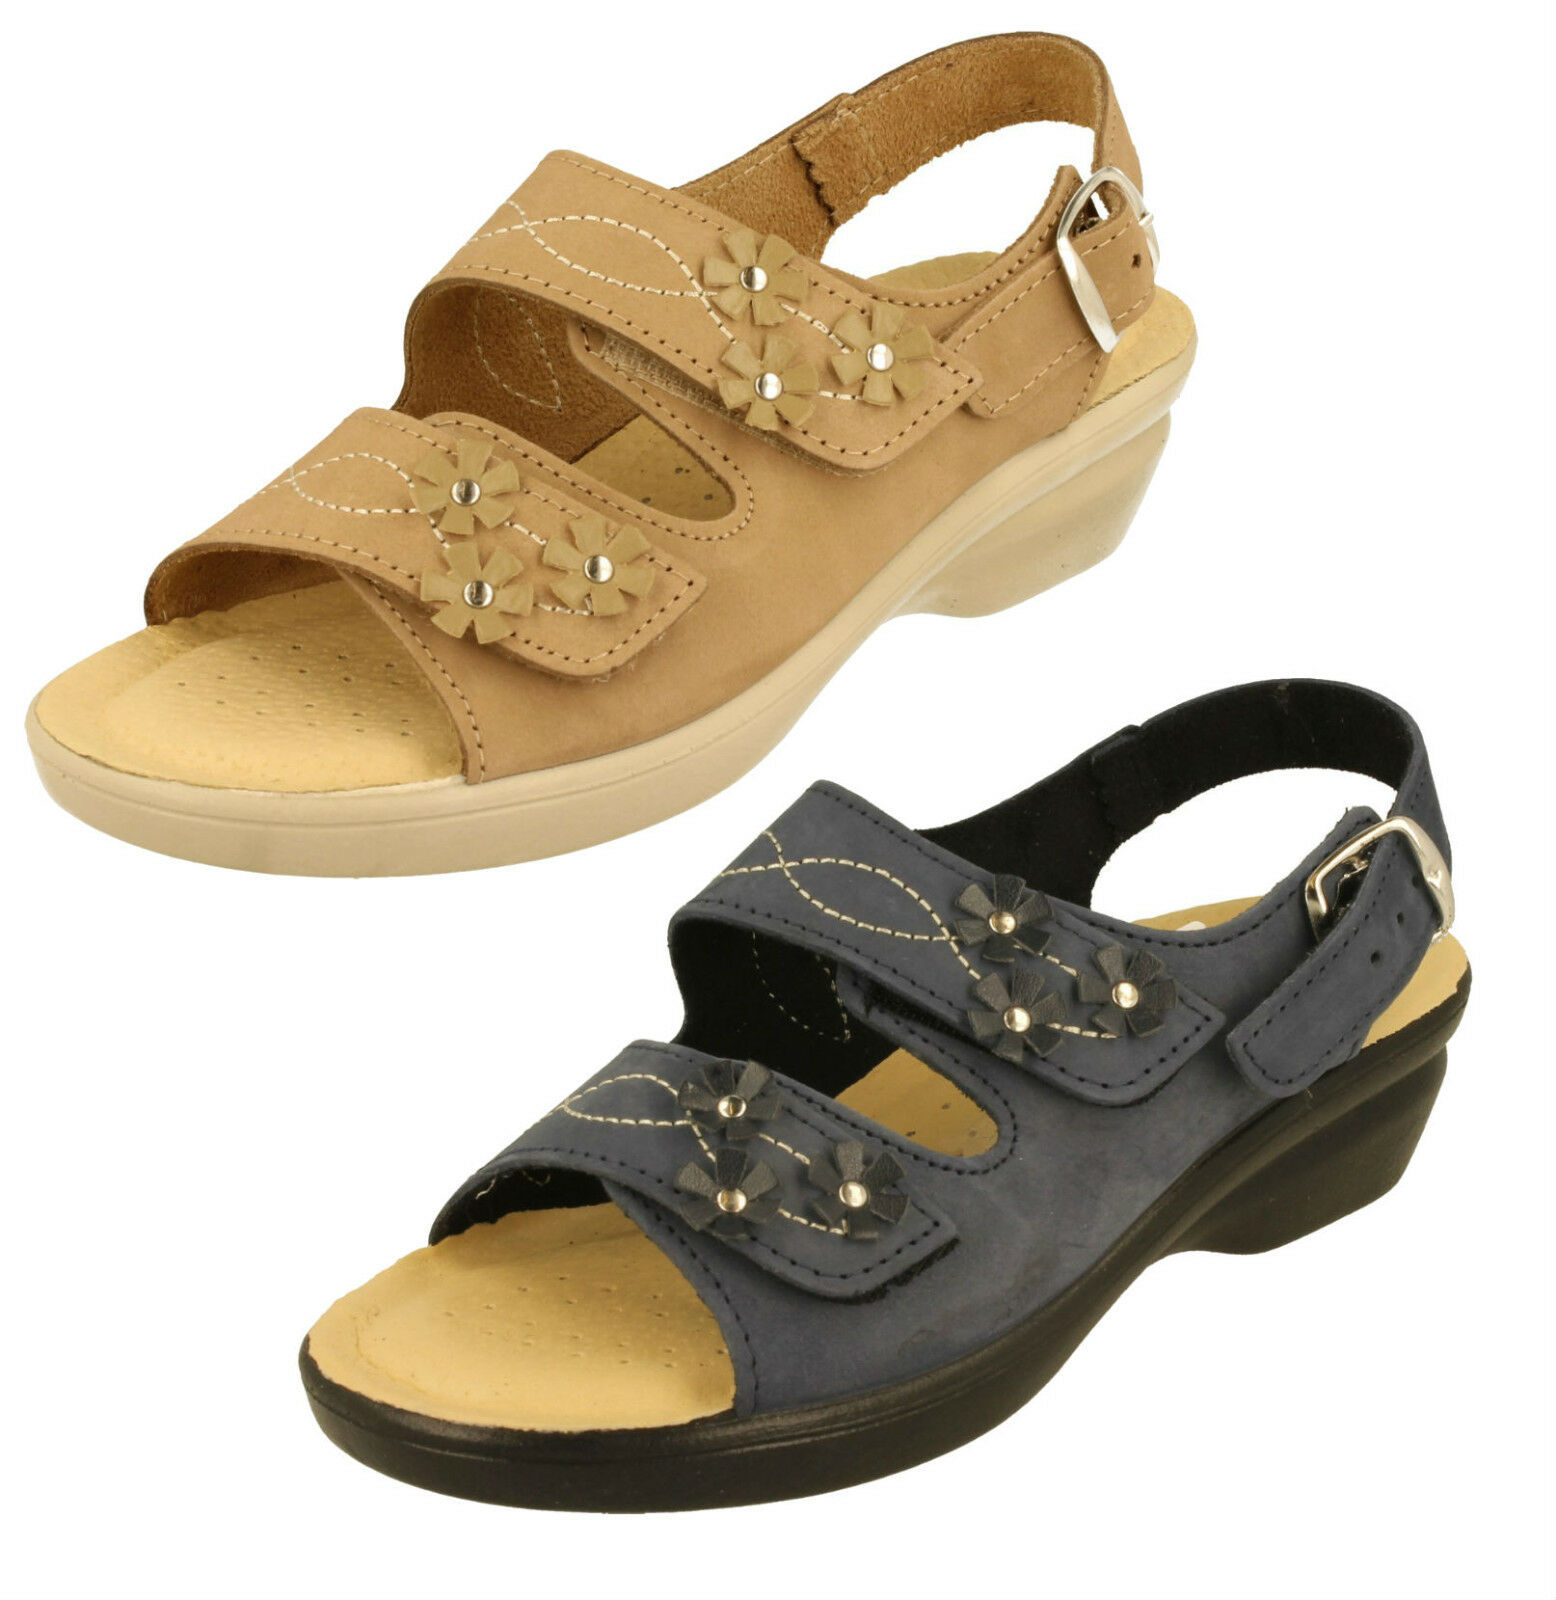 Último gran descuento Padders E Wide Fitting Adjustable Sandals - Bluebell